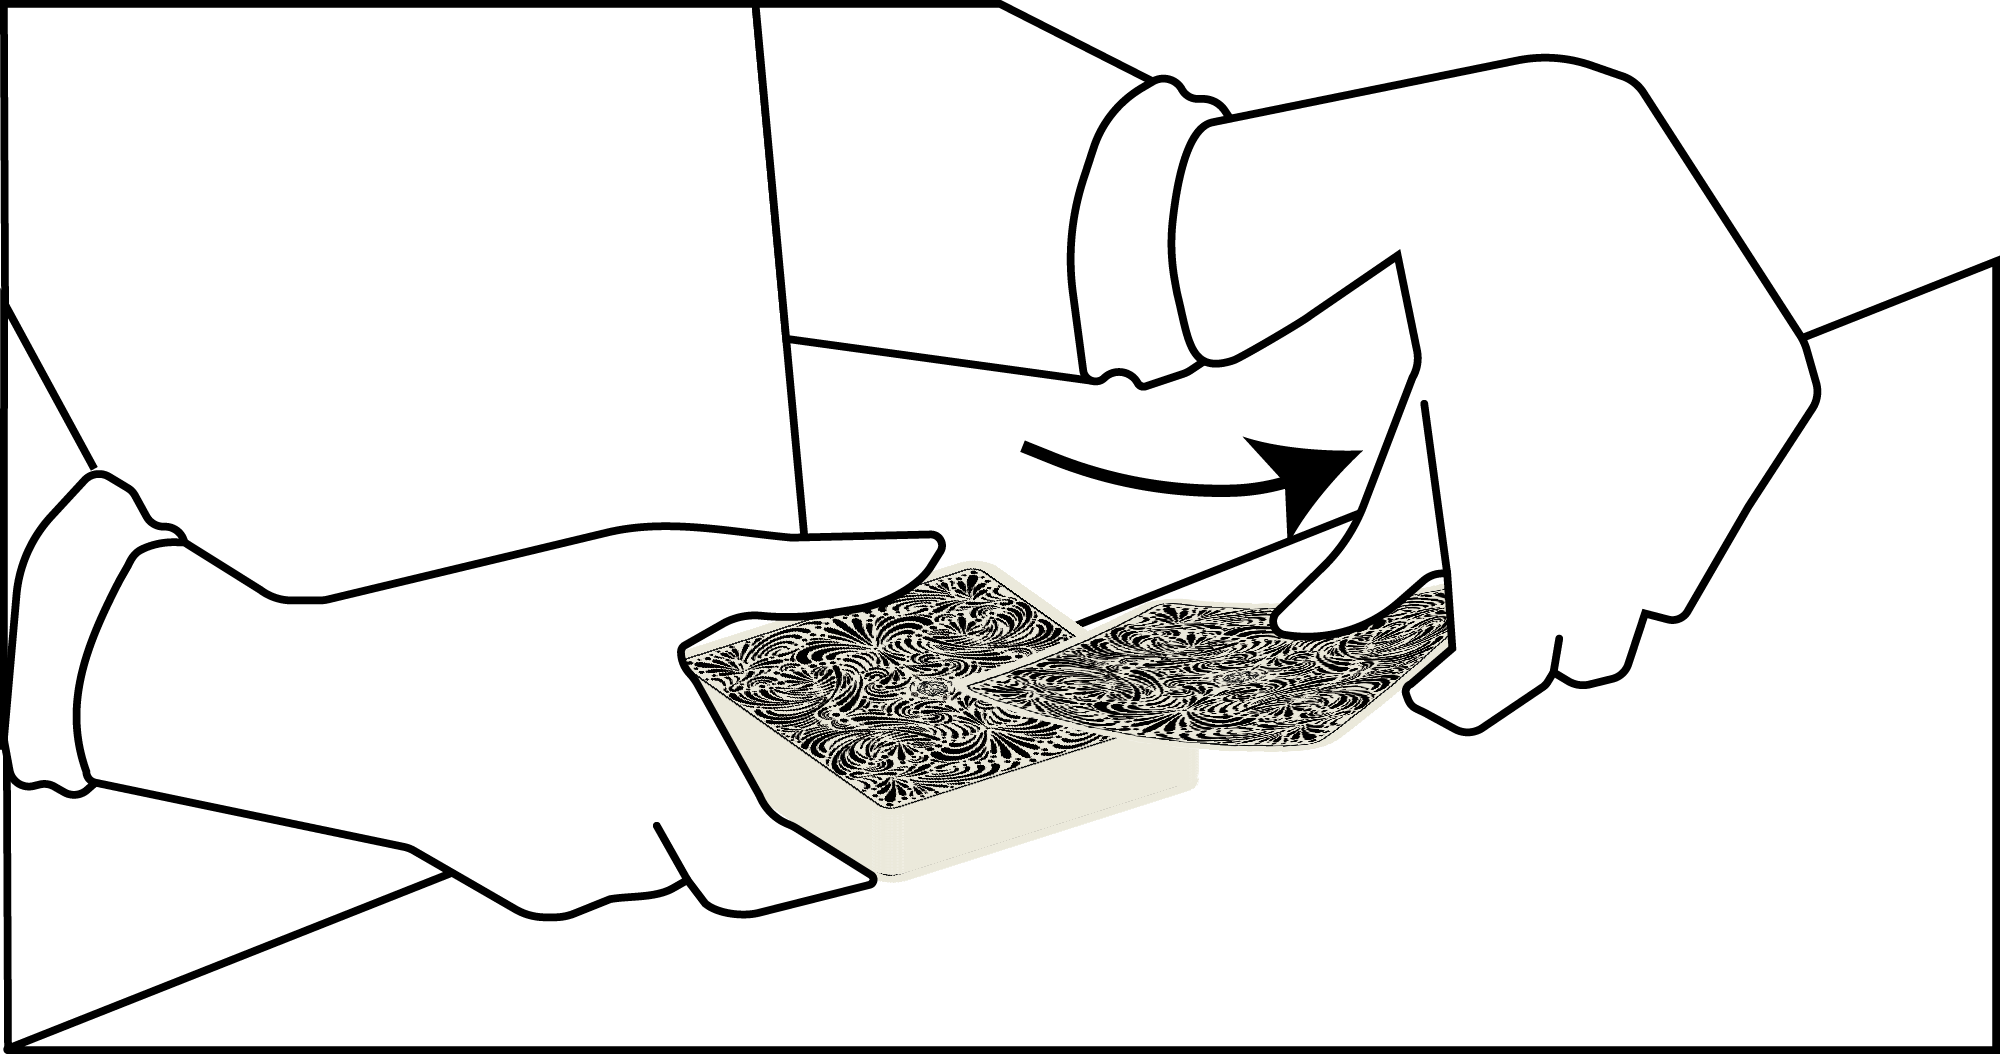 Fig. 1.1: Playing a card properly.